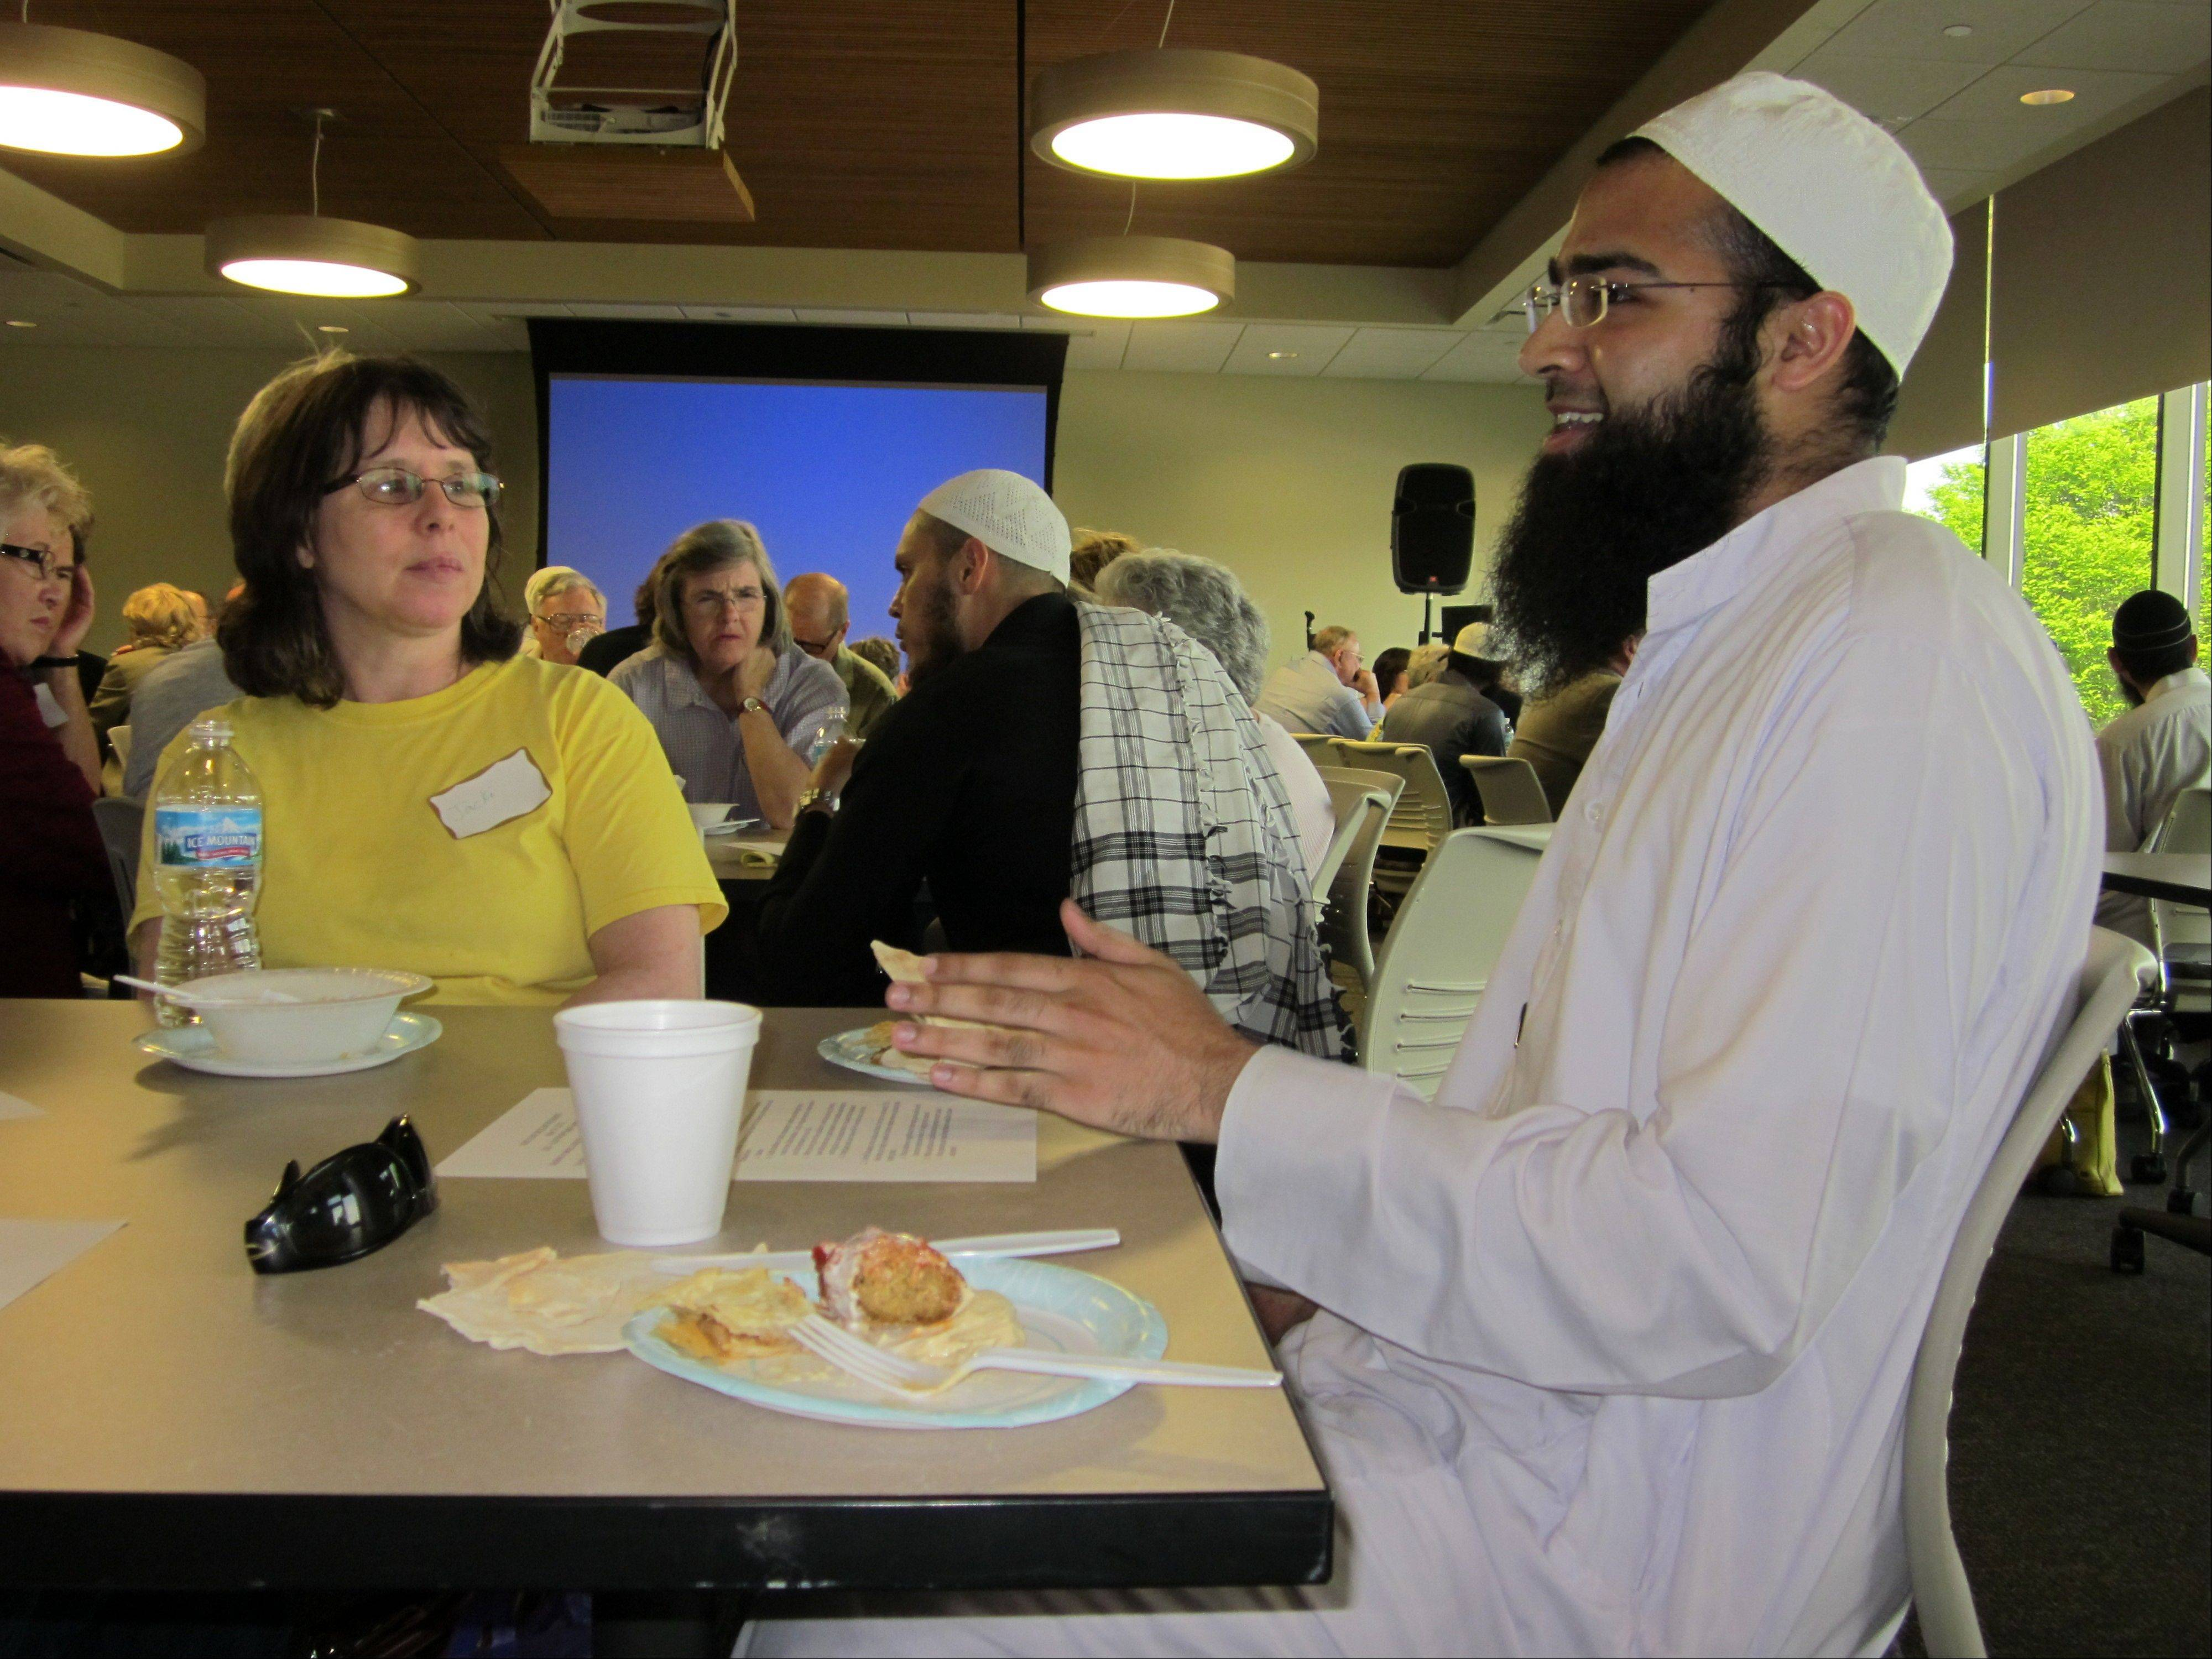 Ahsan Syed, of Bartlett, speaks during a small group session at Sunday�s �Who Is My Muslim Neighbor?� event as Jacki Bakker, of Carpentersville, listens. Syed is a student of Islam at the Institute of Islamic Education in Elgin.